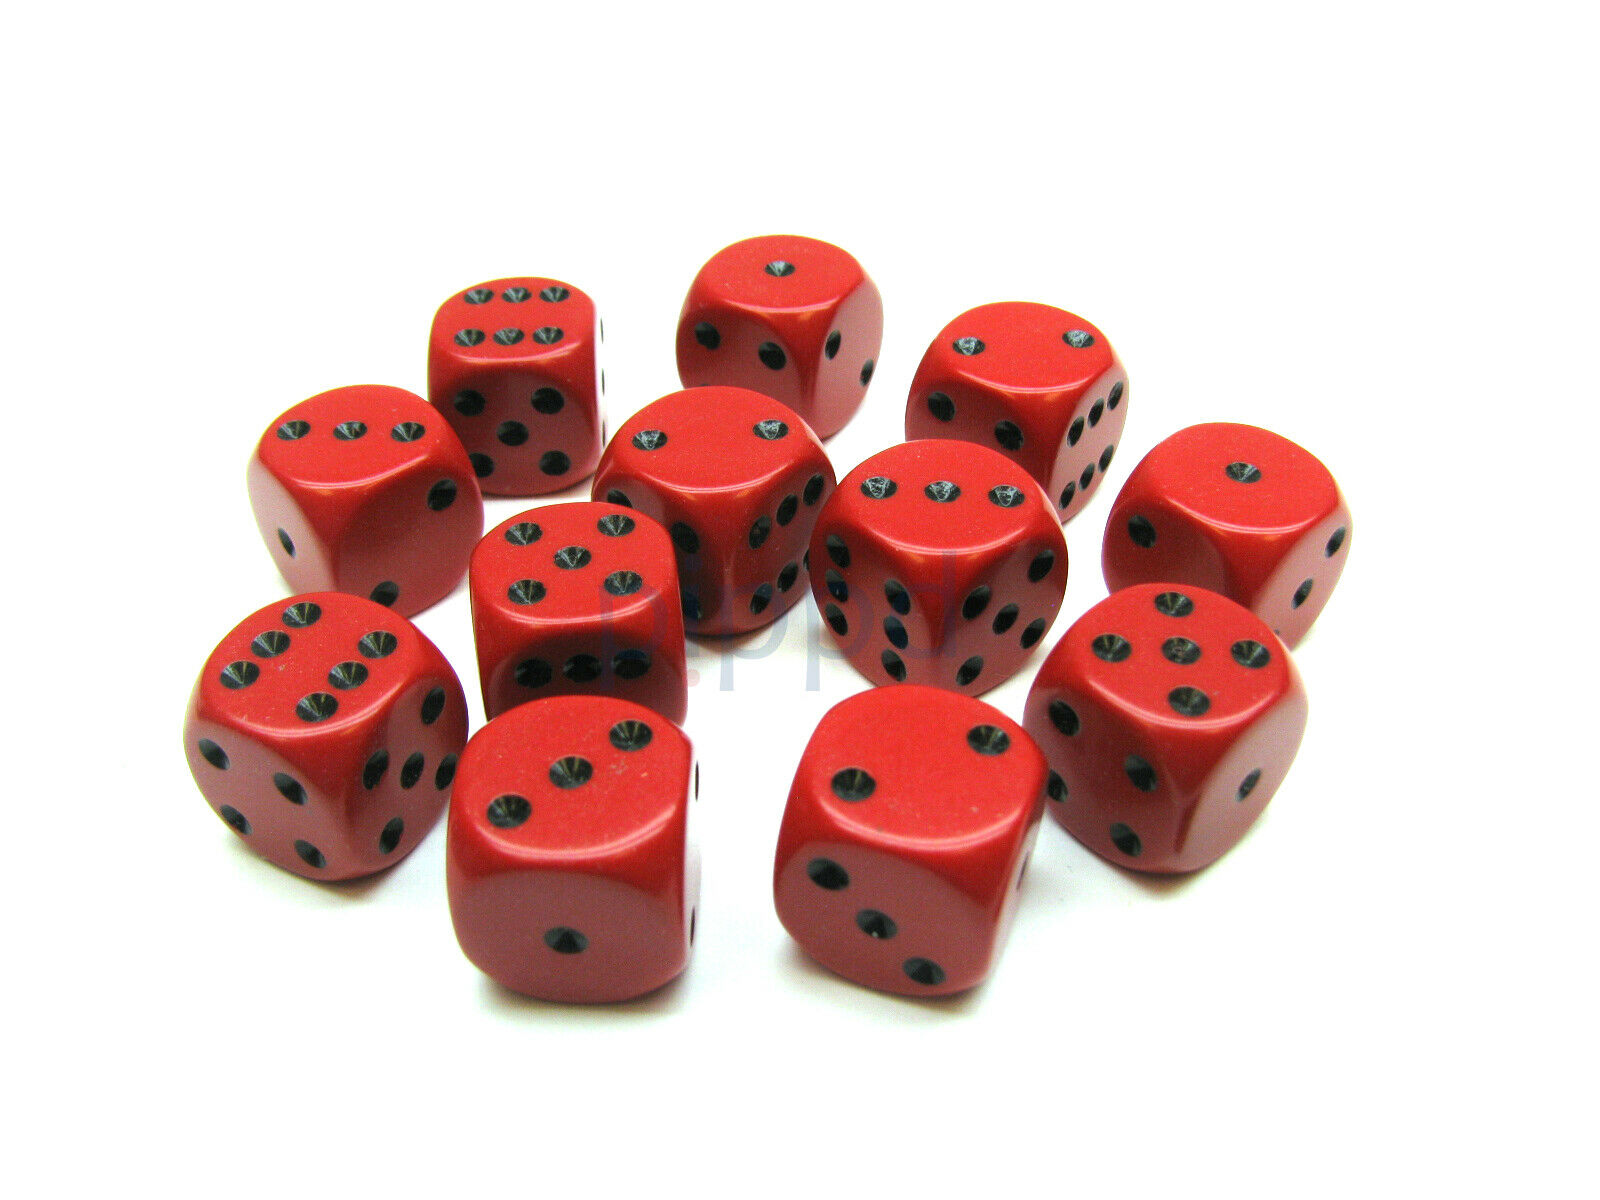 Speckled 12mm D6 RPG Chessex Dice 12 Dice Ninja Speckled Black and Grey Bunco